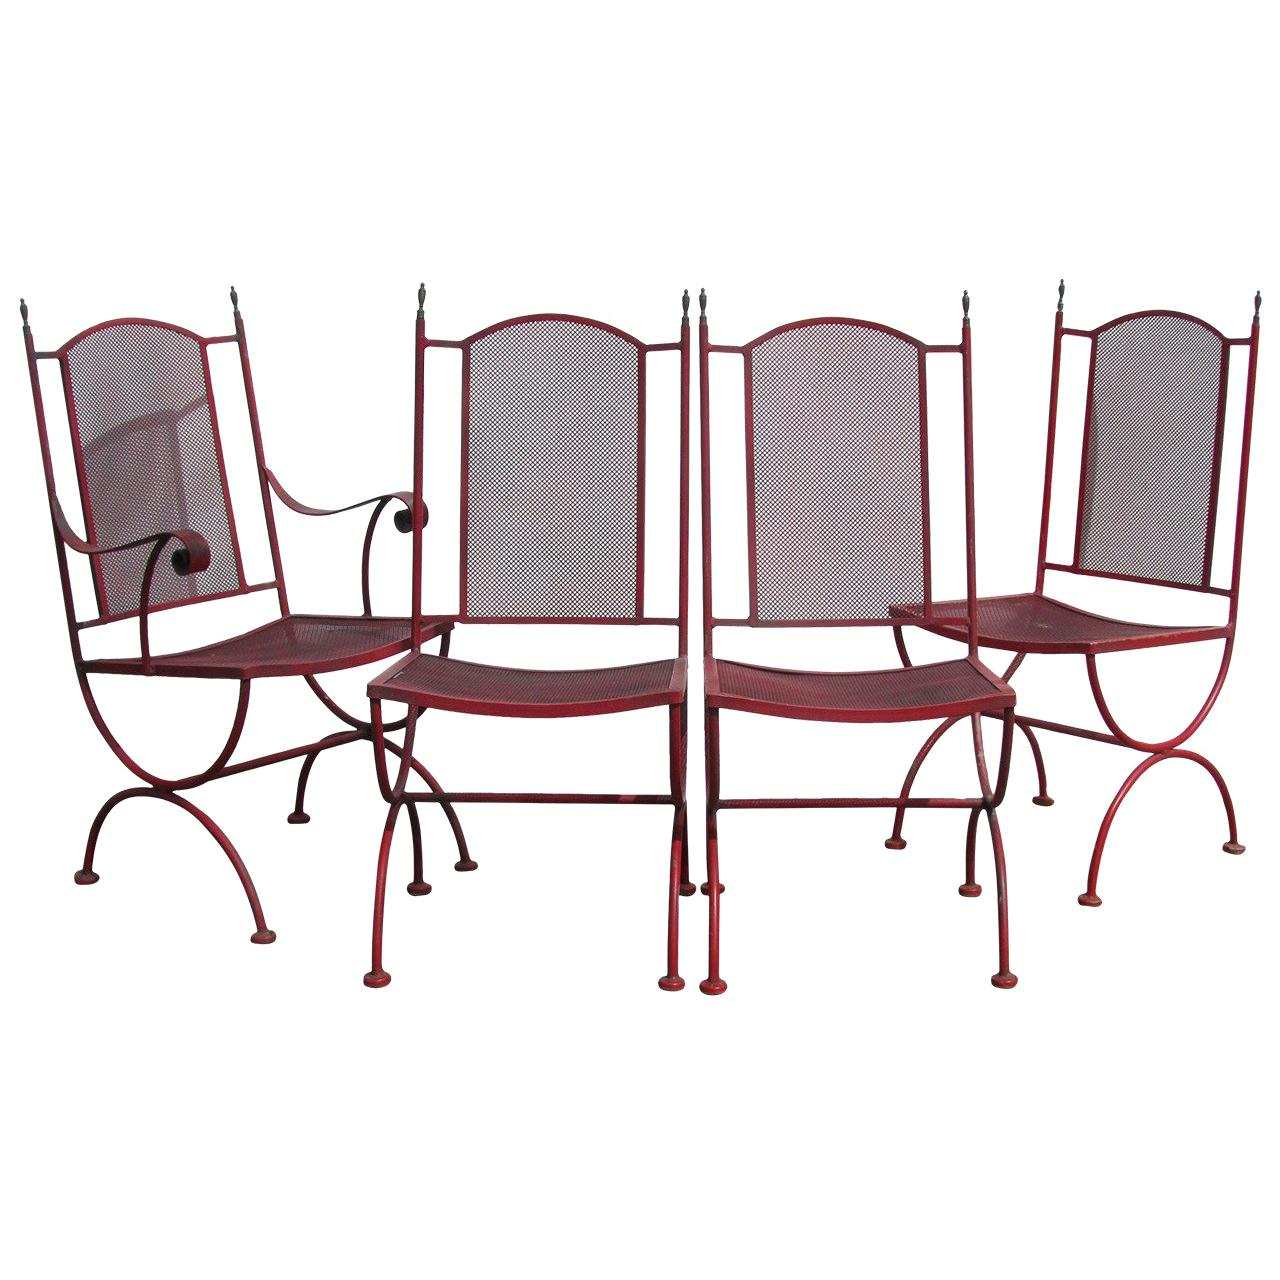 Classical Regency Style Iron Curule Chairs